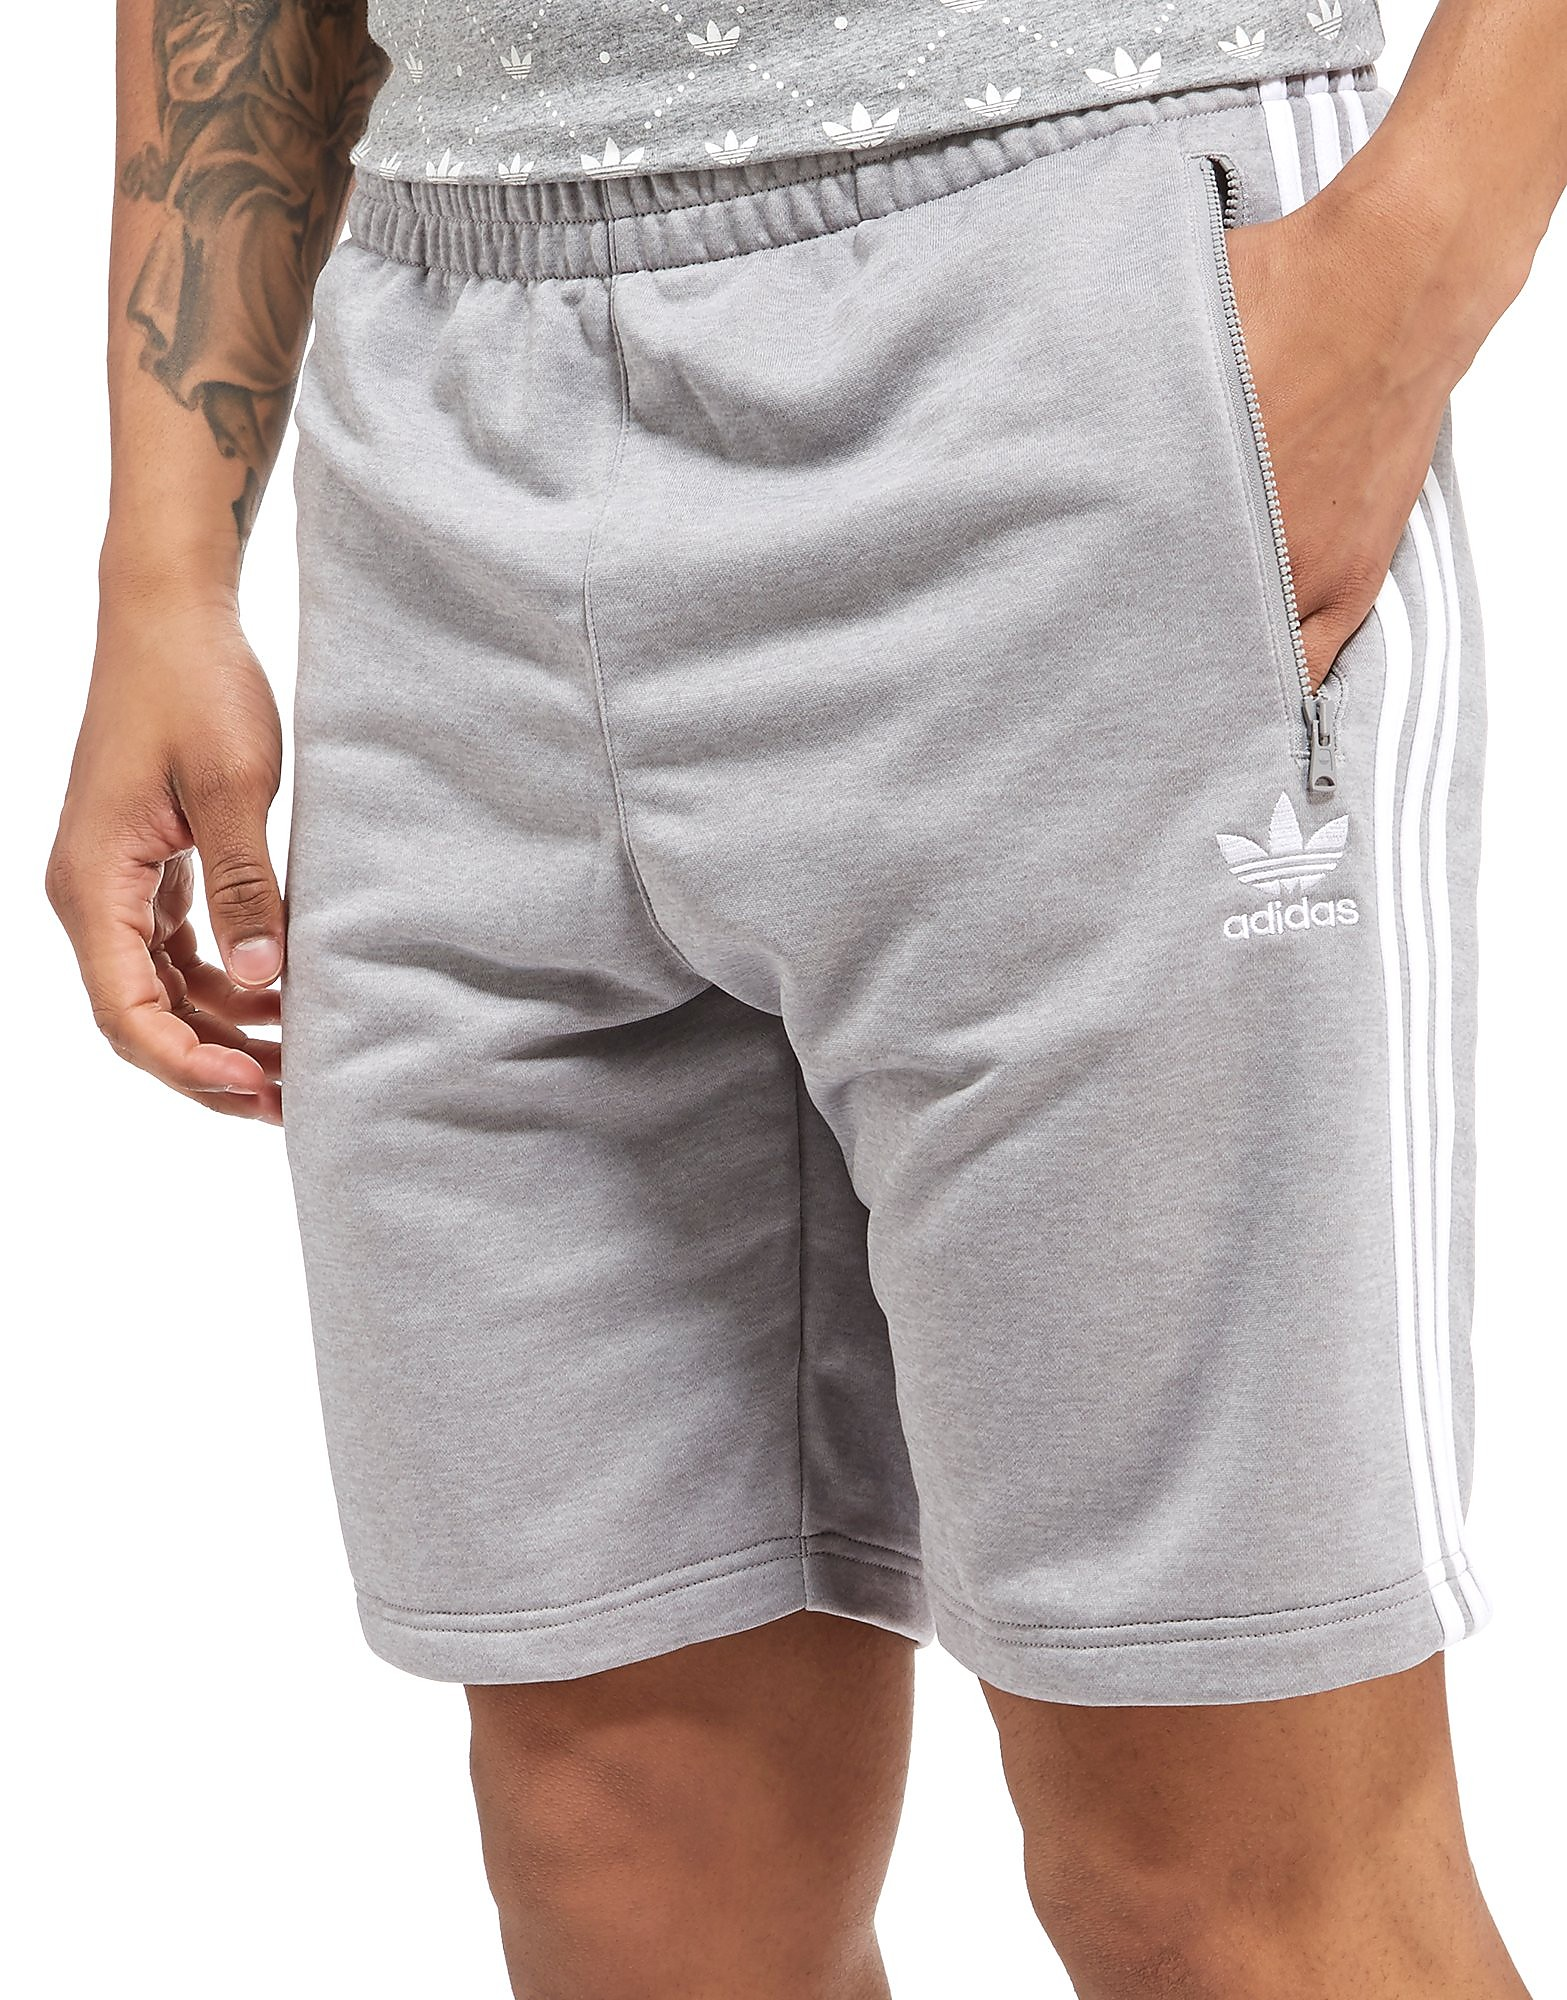 adidas Originals Superstar Shorts